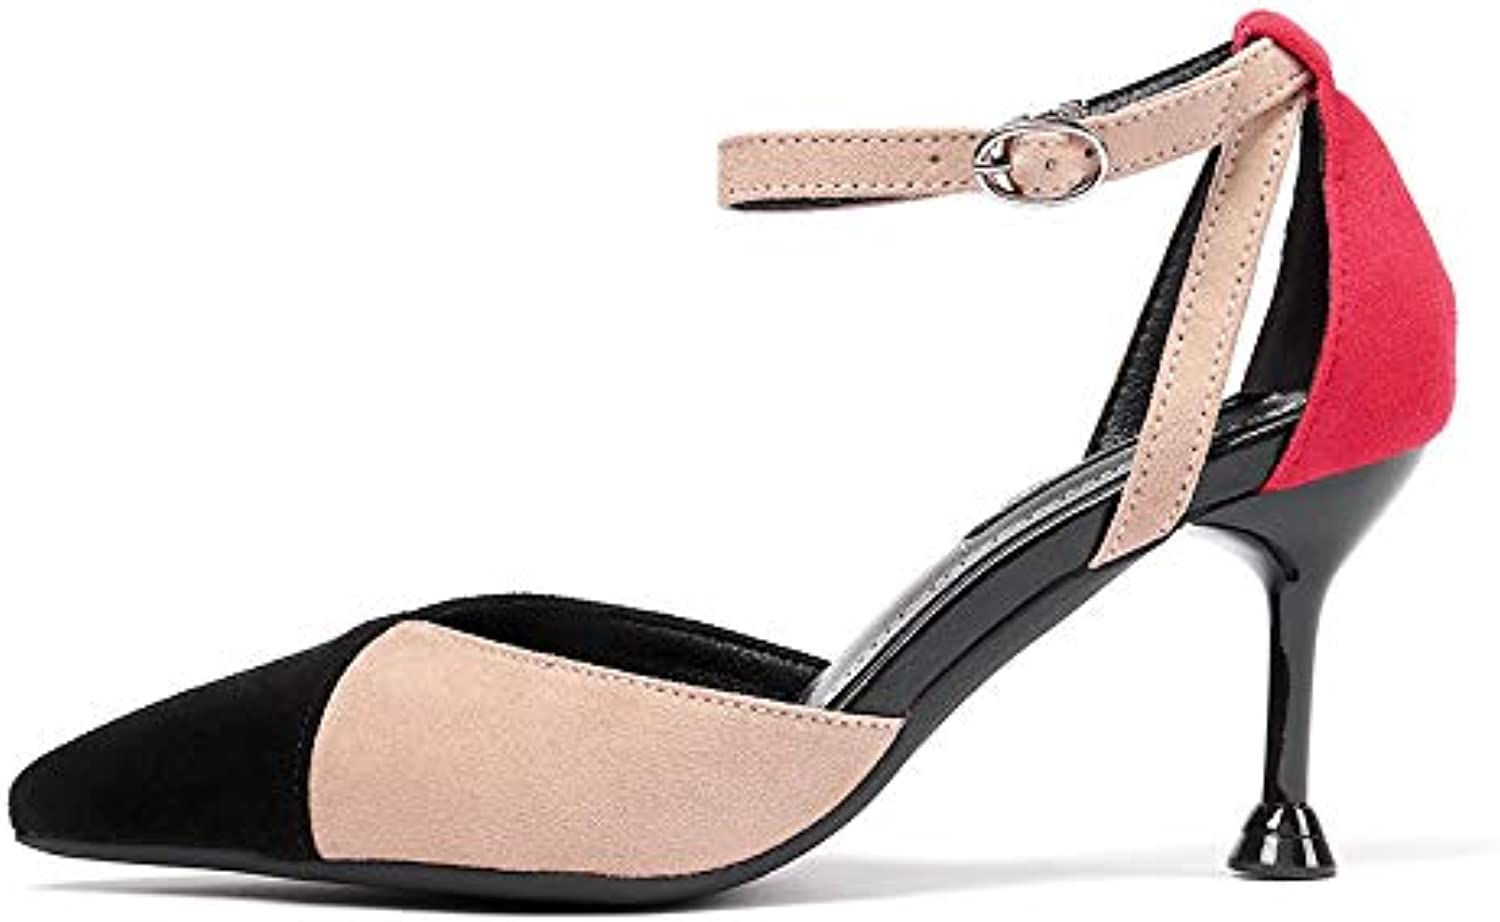 Duduxiaomaibu Women High Heel Bow Ankle Strap Evening Party Dance Wedding Satin shoes